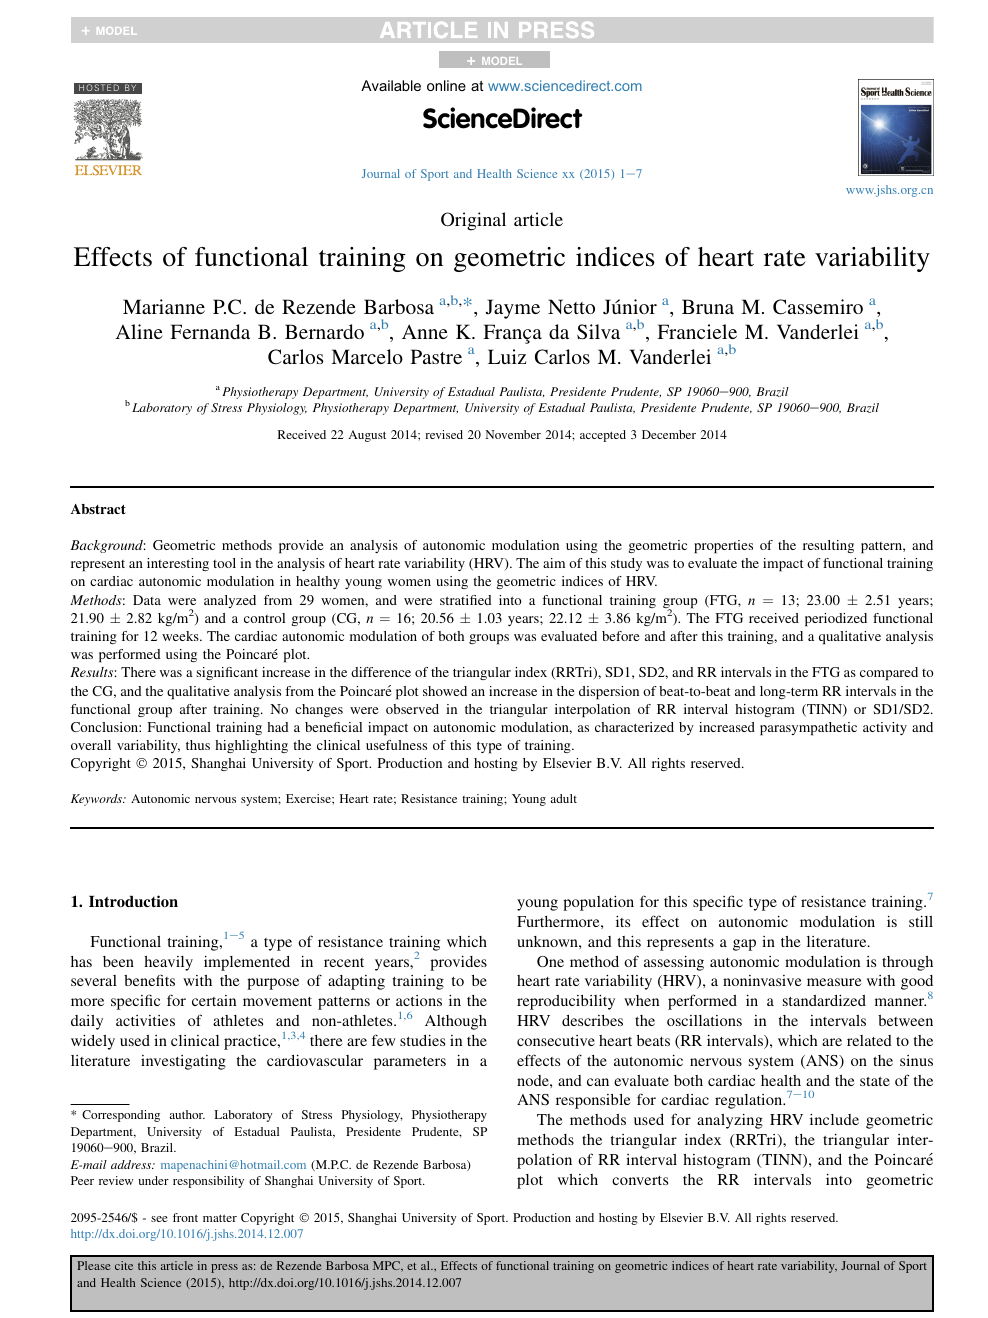 Effects of functional training on geometric indices of heart rate